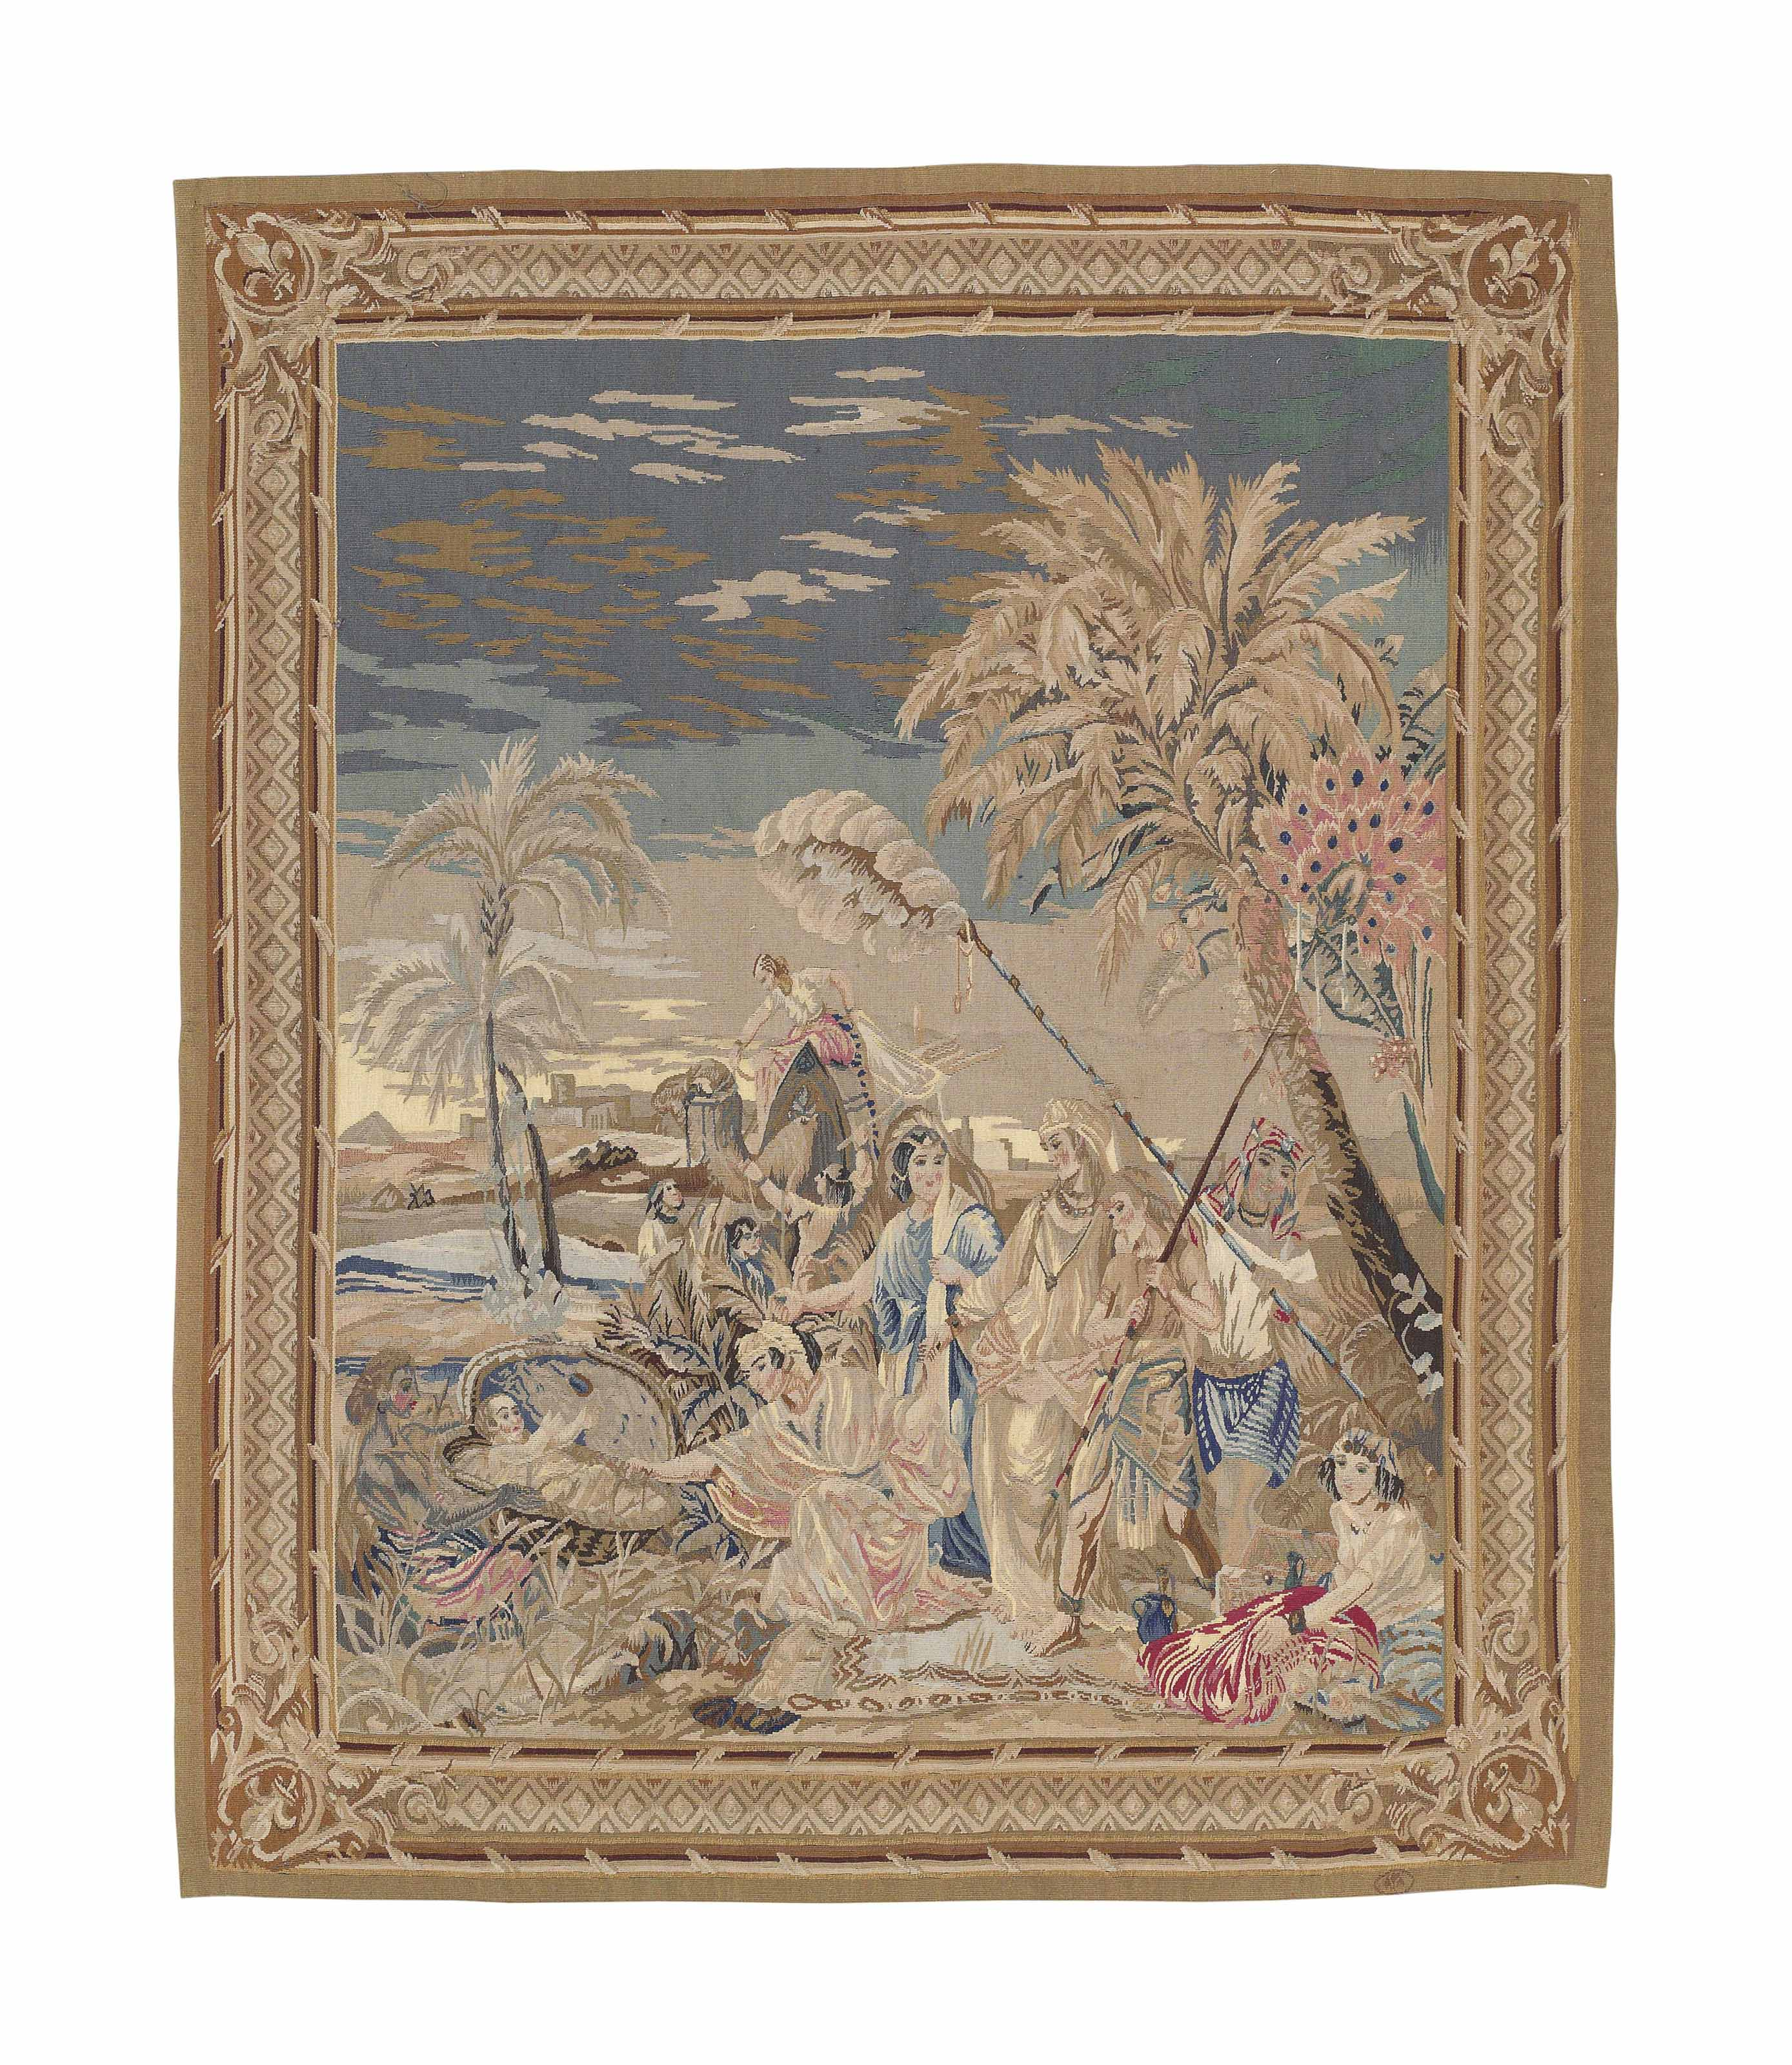 A POLYCHROME BIBLICAL TAPESTRY